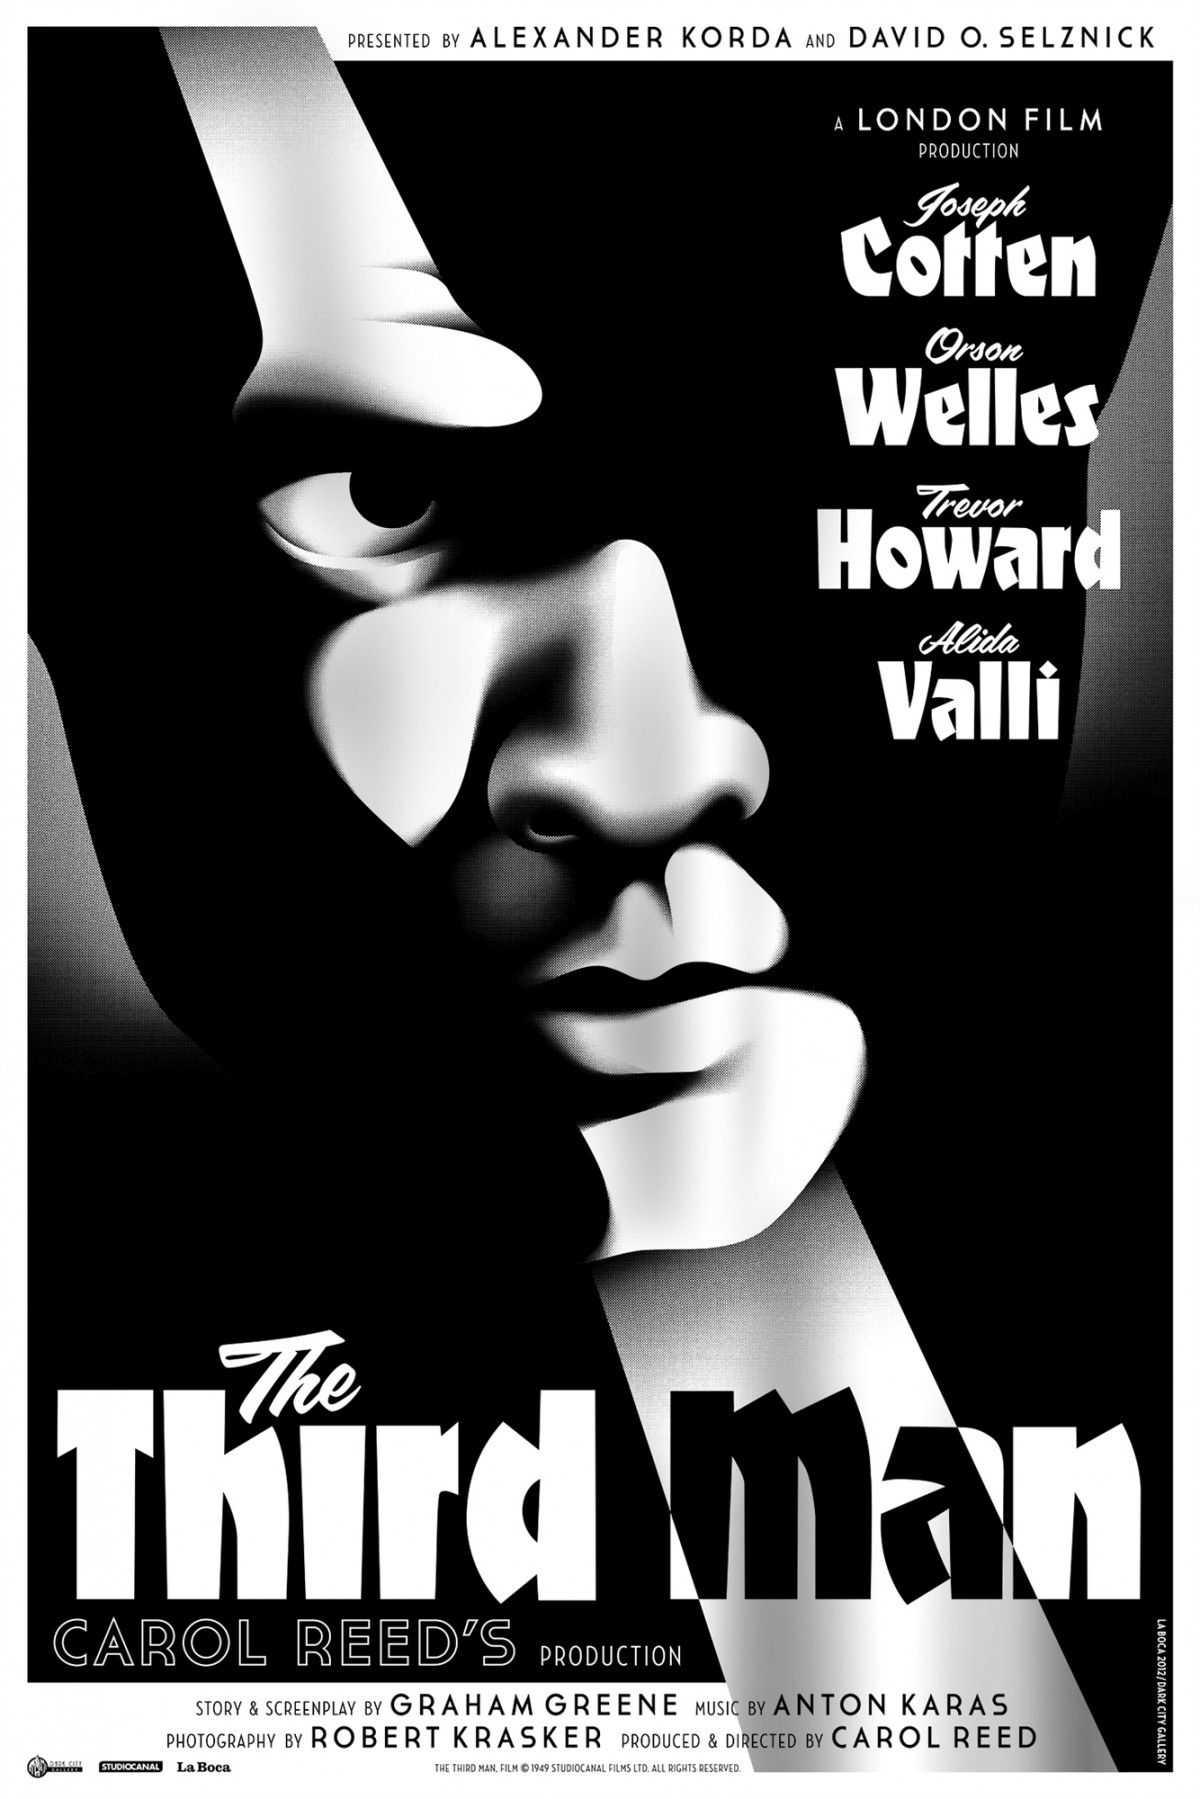 70. The Third Man (1949)